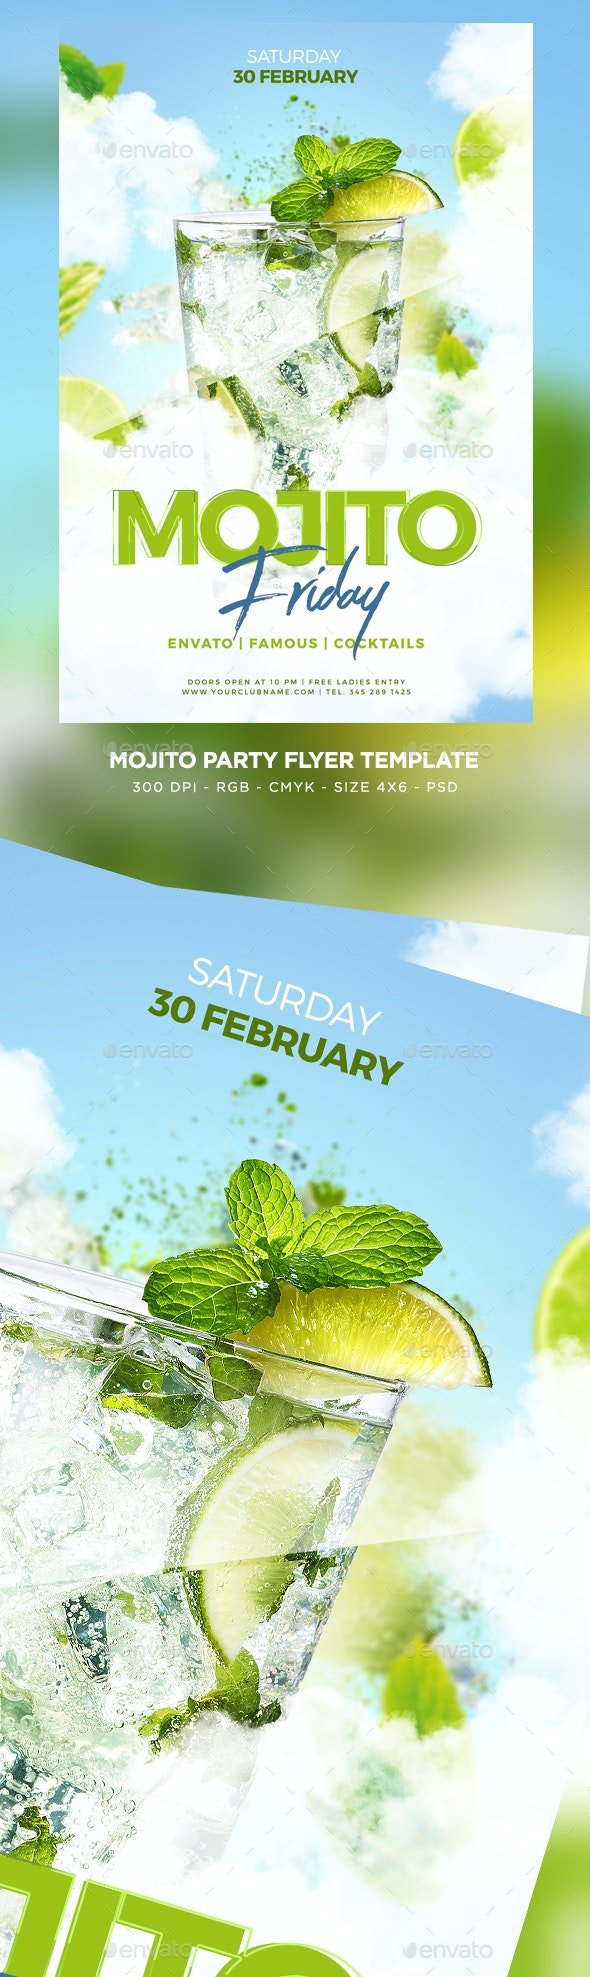 Mojito Party Flyer - Clubs & Parties Events